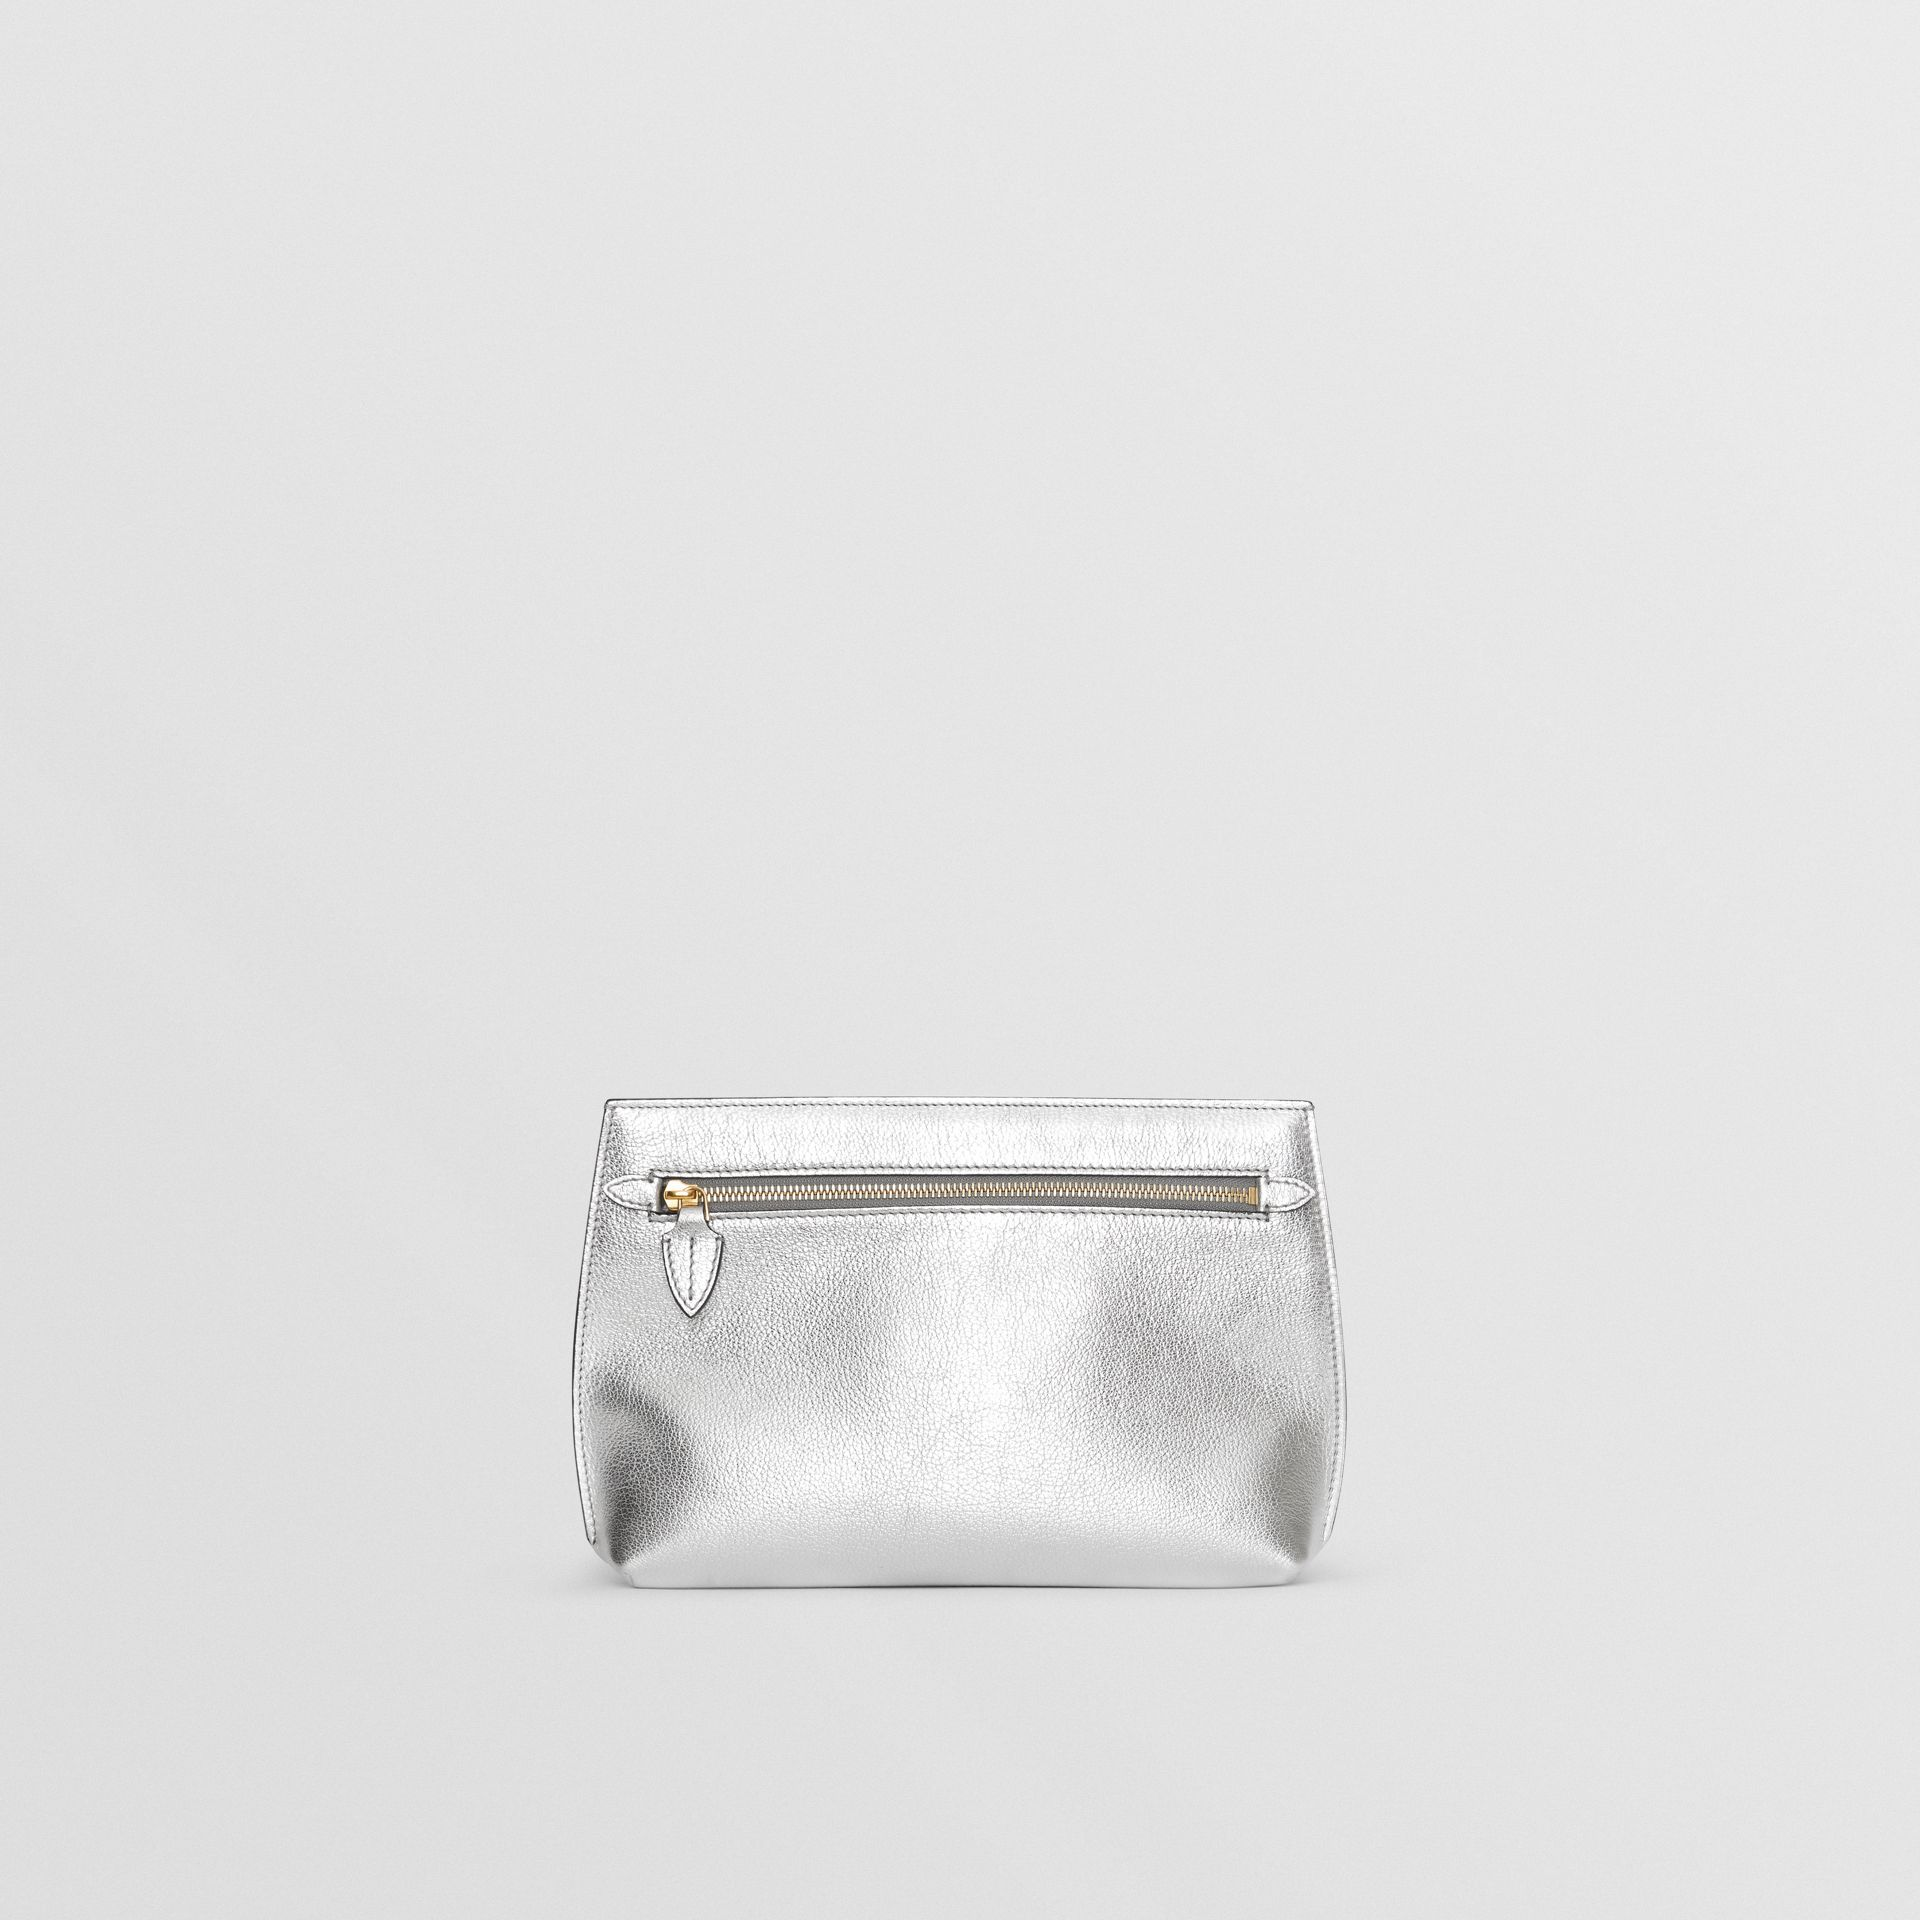 Metallic Leather Wristlet Clutch in Silver - Women | Burberry - gallery image 7